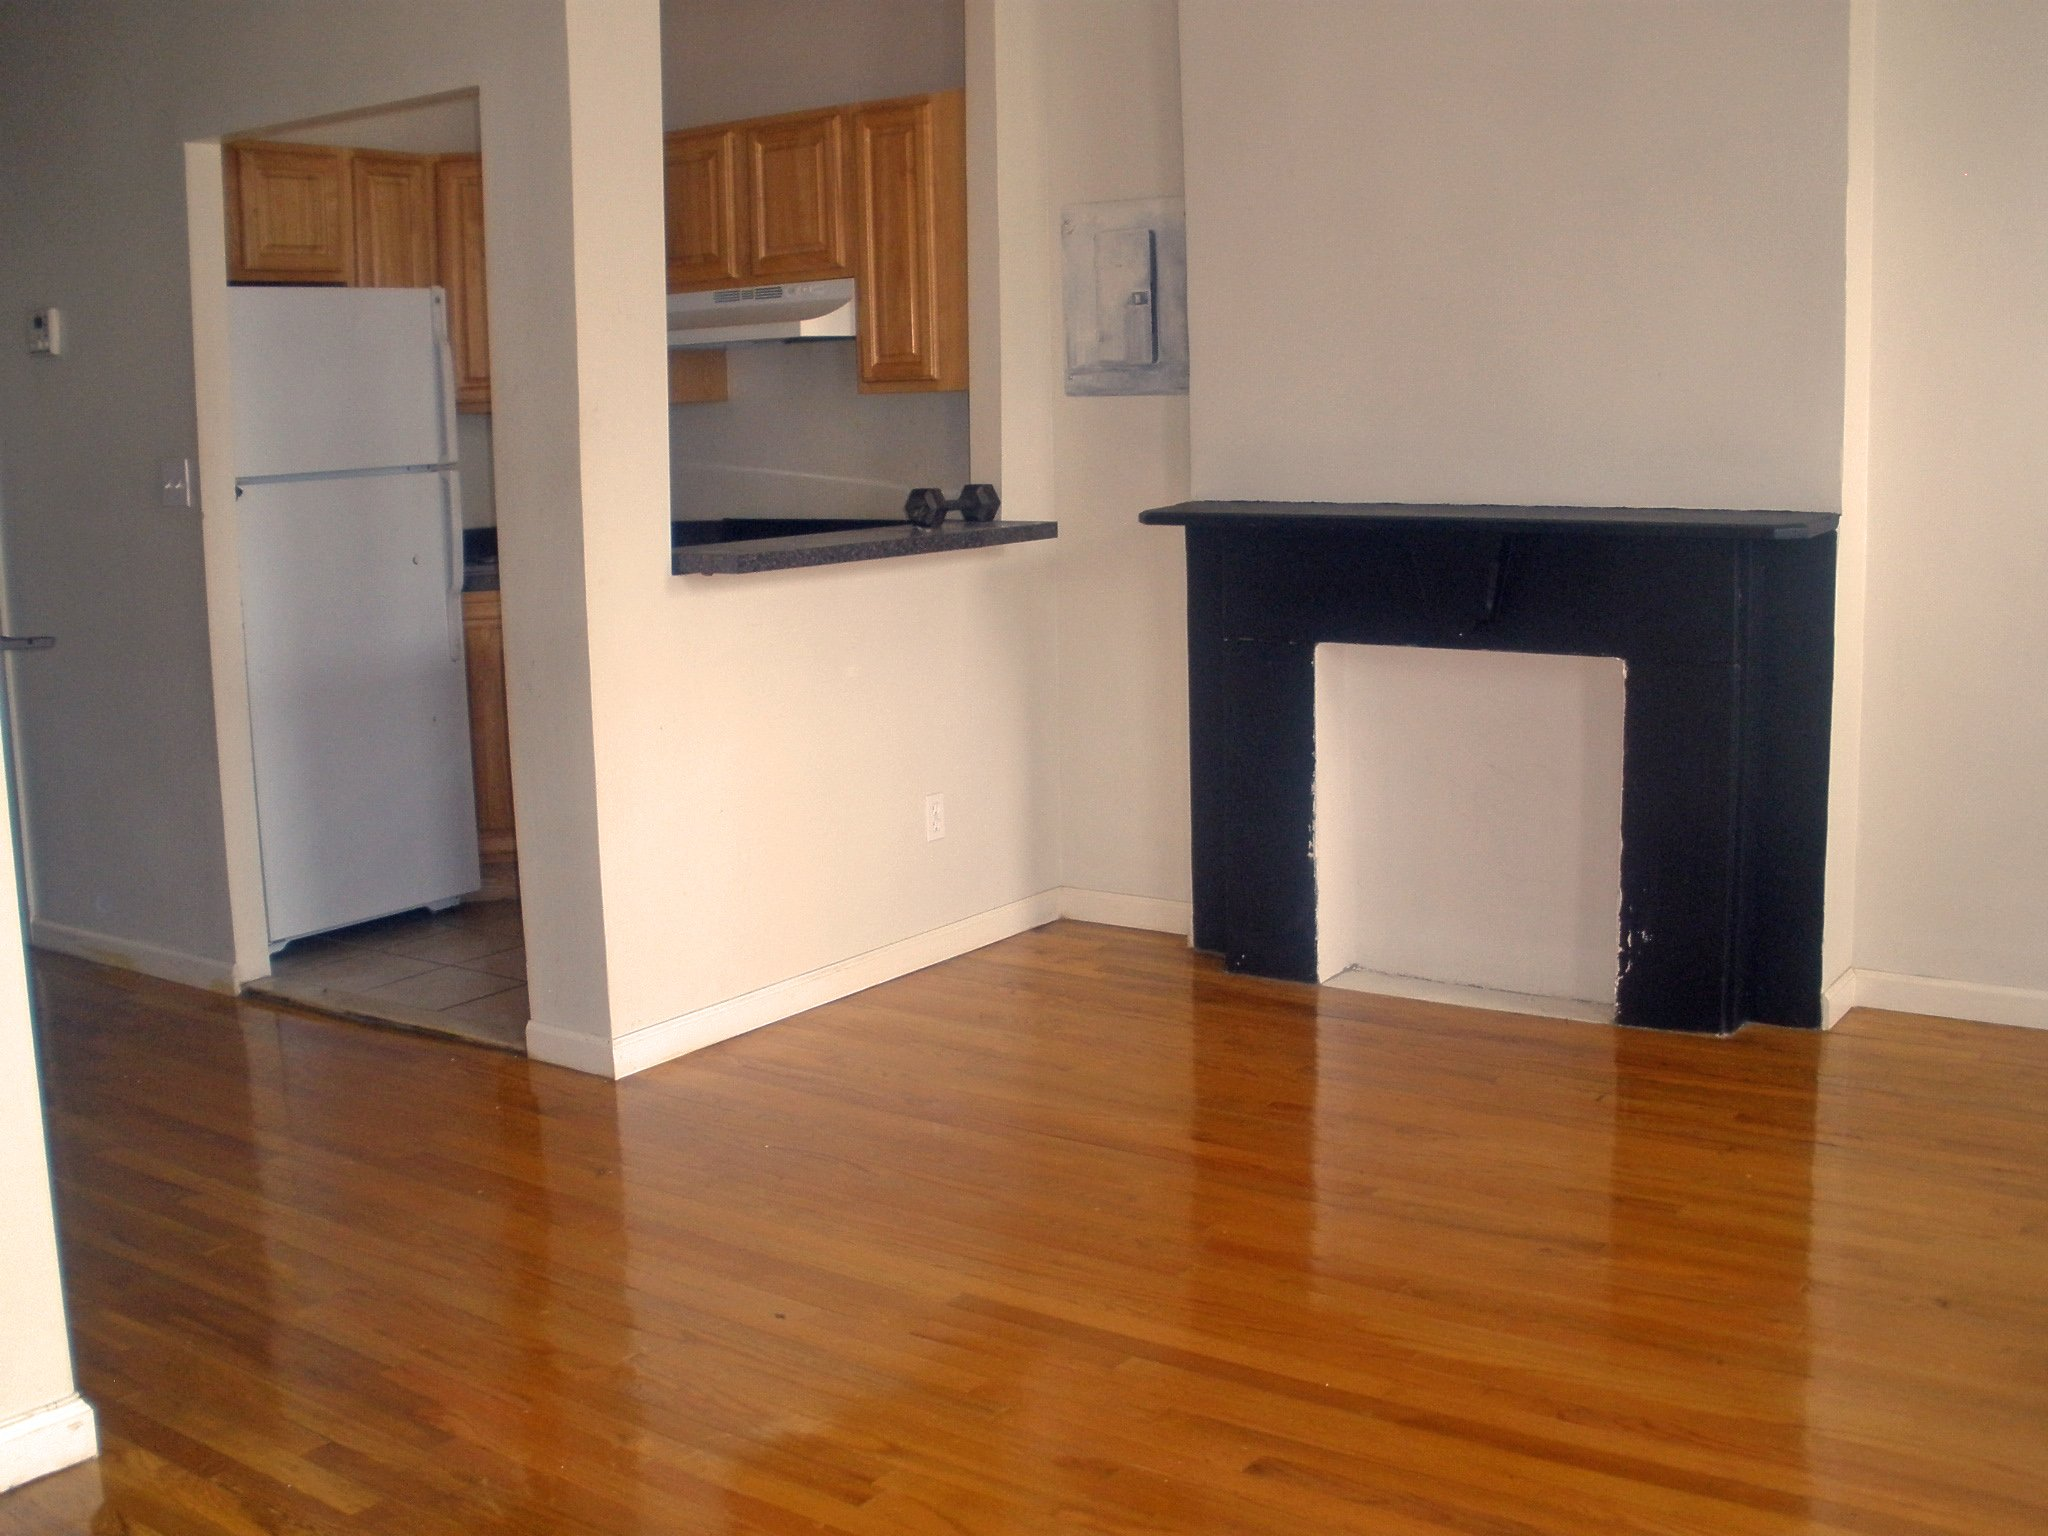 Bedford stuyvesant 2 bedroom apartment for rent brooklyn crg3110 for Apartments for rent two bedroom